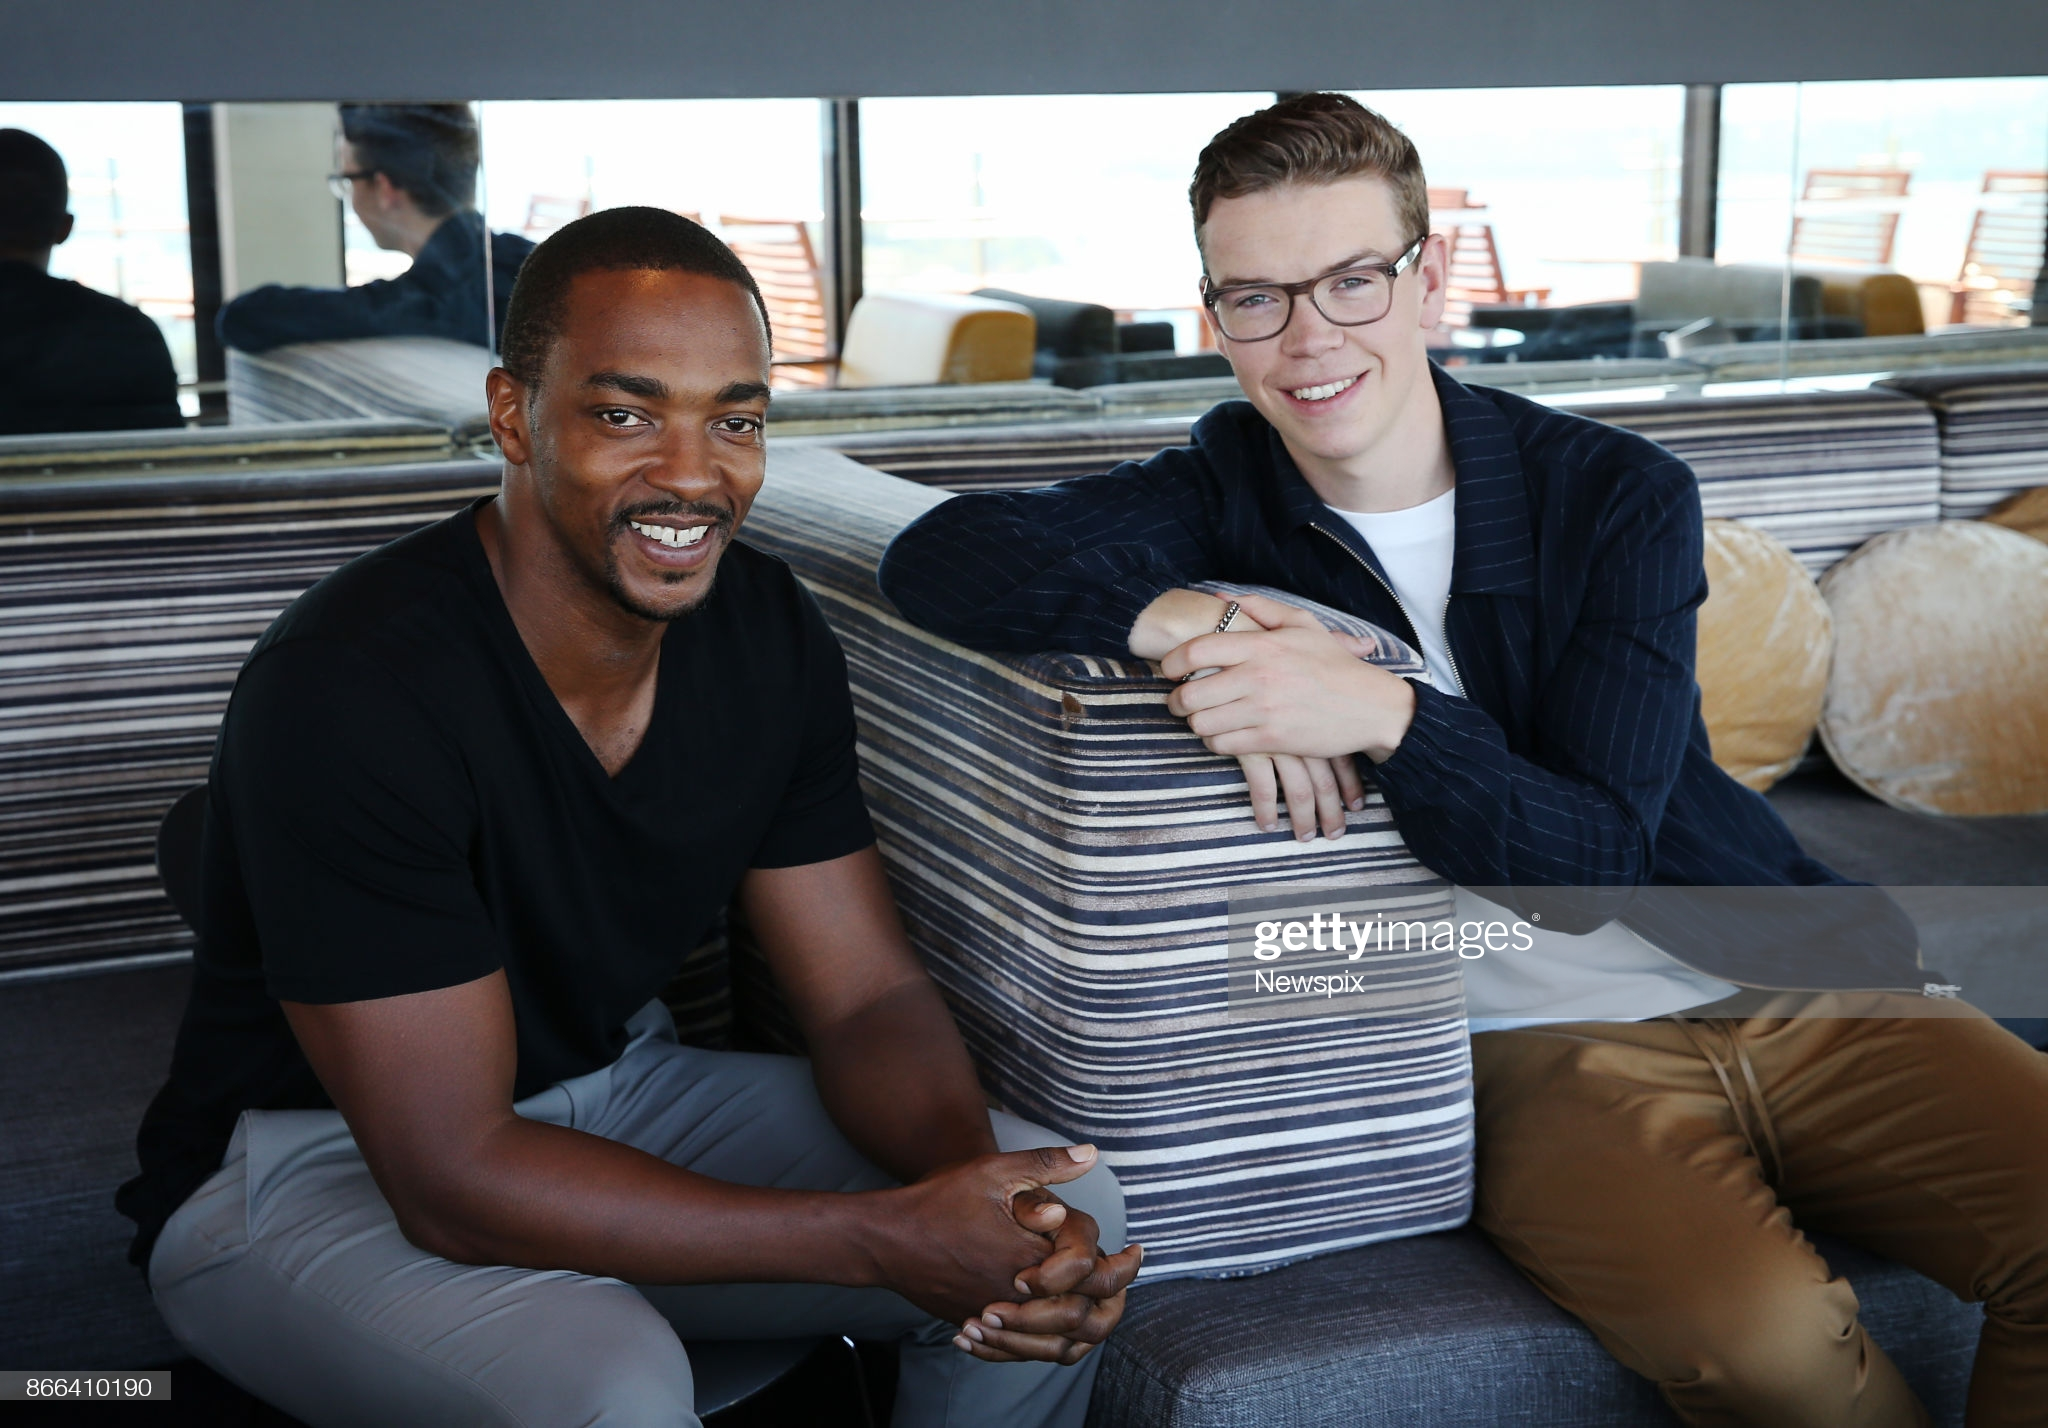 Actors Anthony Mackie and Will Poulter pose during a photo shoot in Sydney, New South Wales